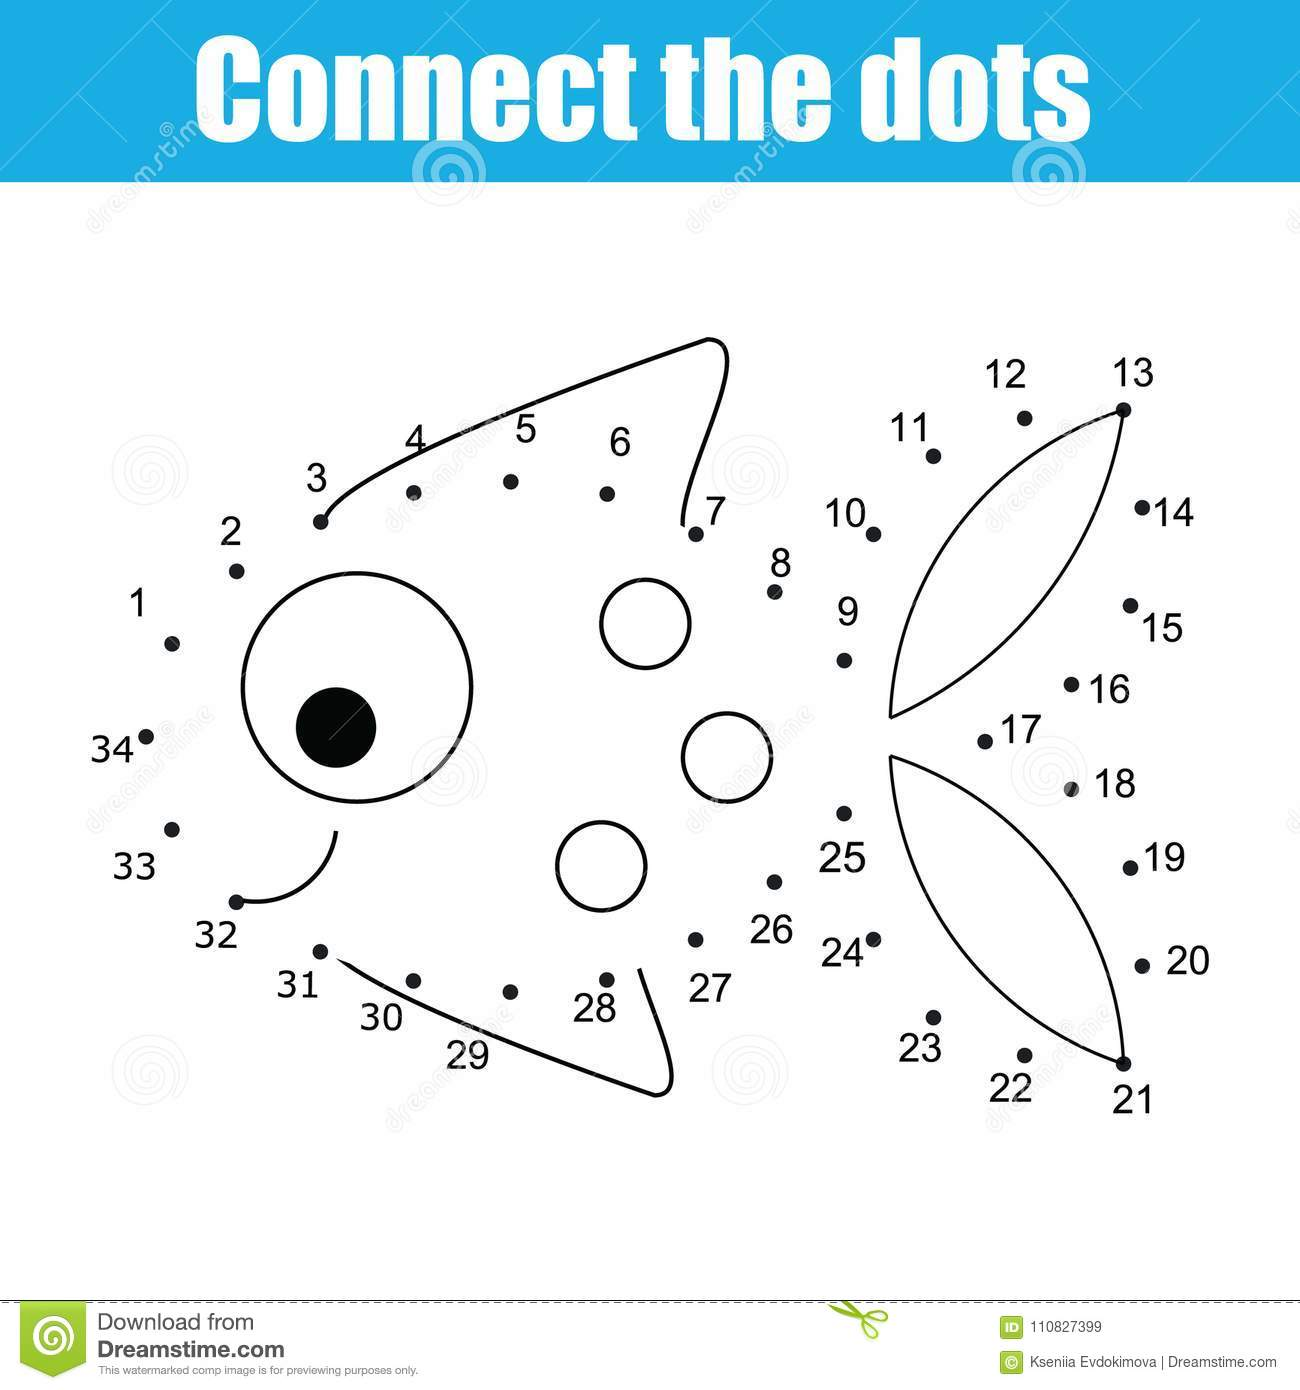 connect the dots by numbers children educational game printable worksheet activity fish stock. Black Bedroom Furniture Sets. Home Design Ideas